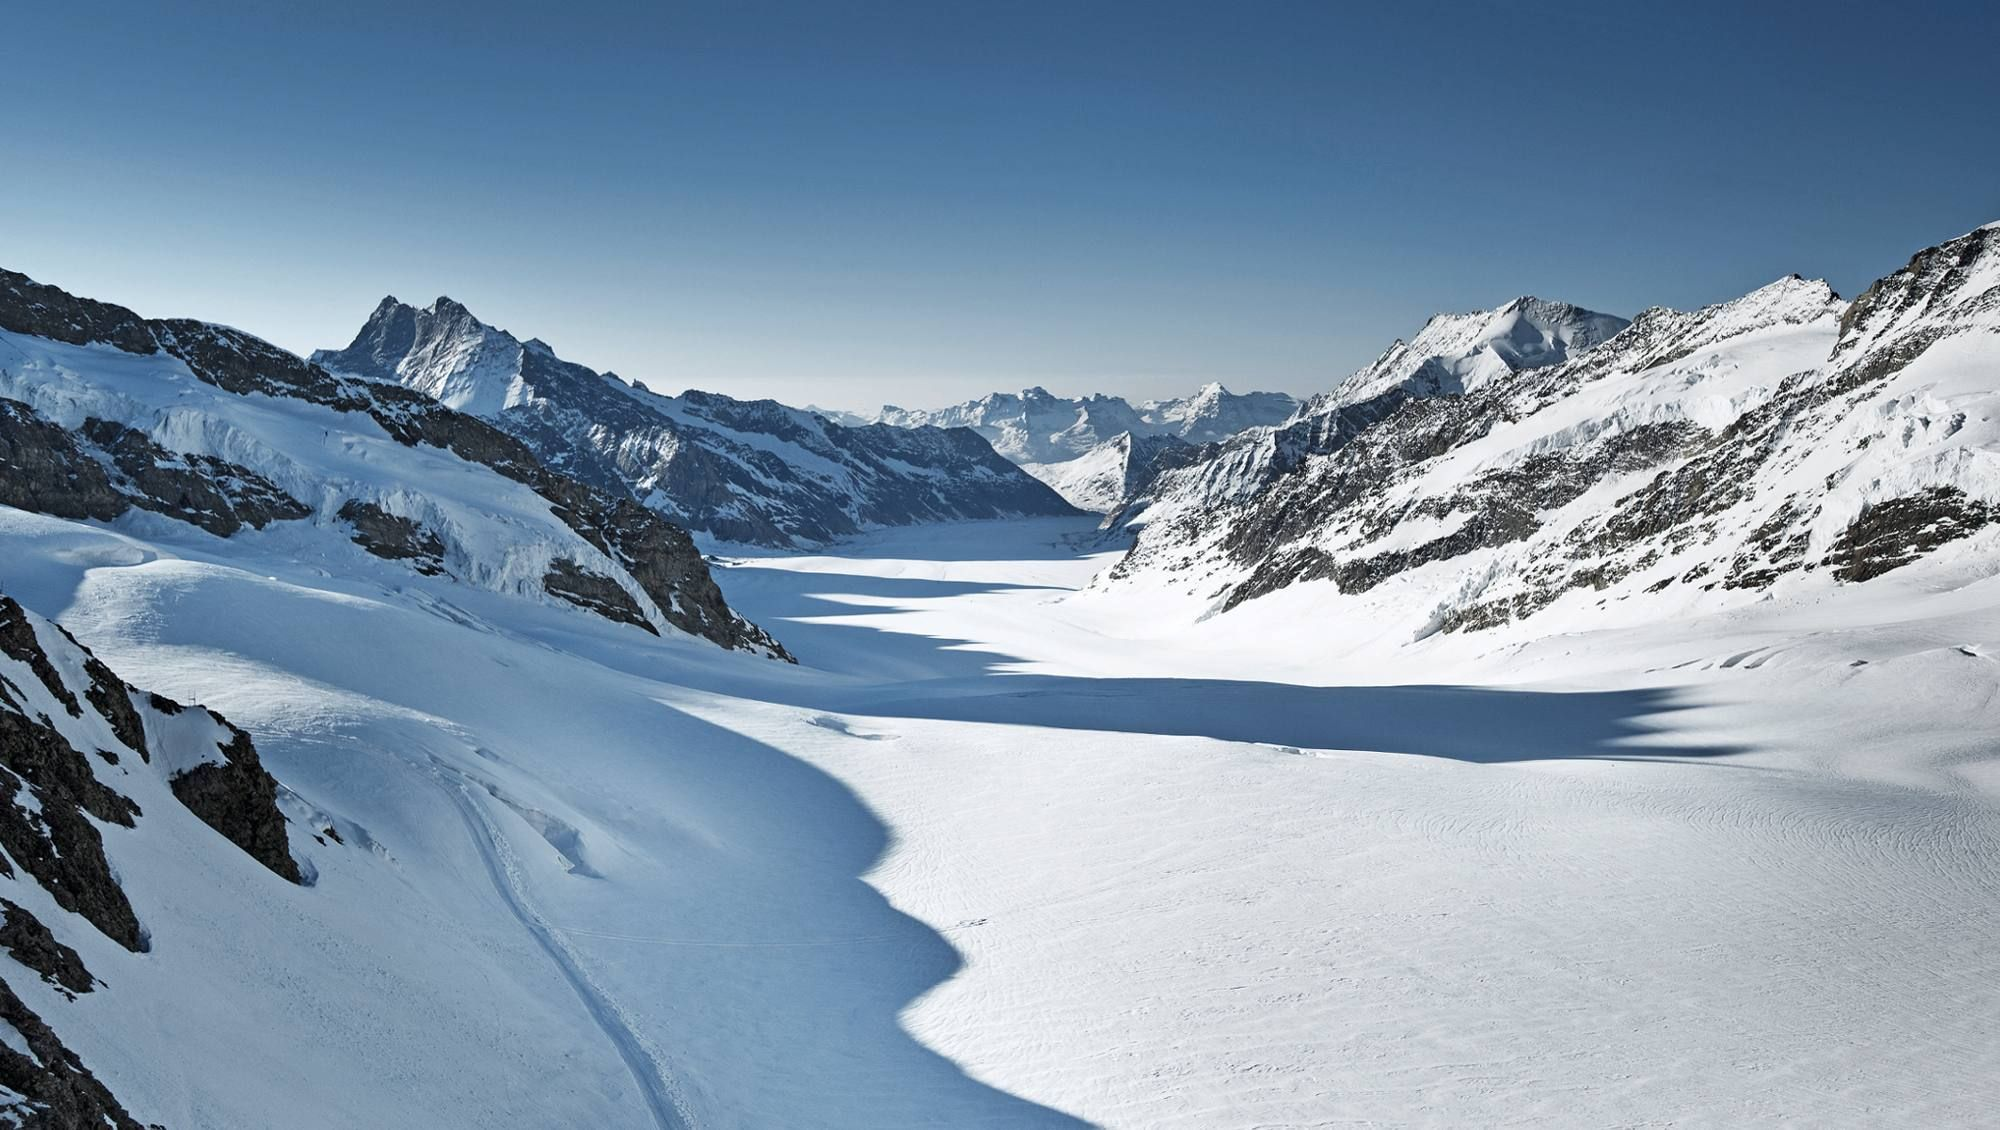 Jungfraujoch- Top of Europe. The new V-Cableway will bring you to your destination up to 47 minutes faster.